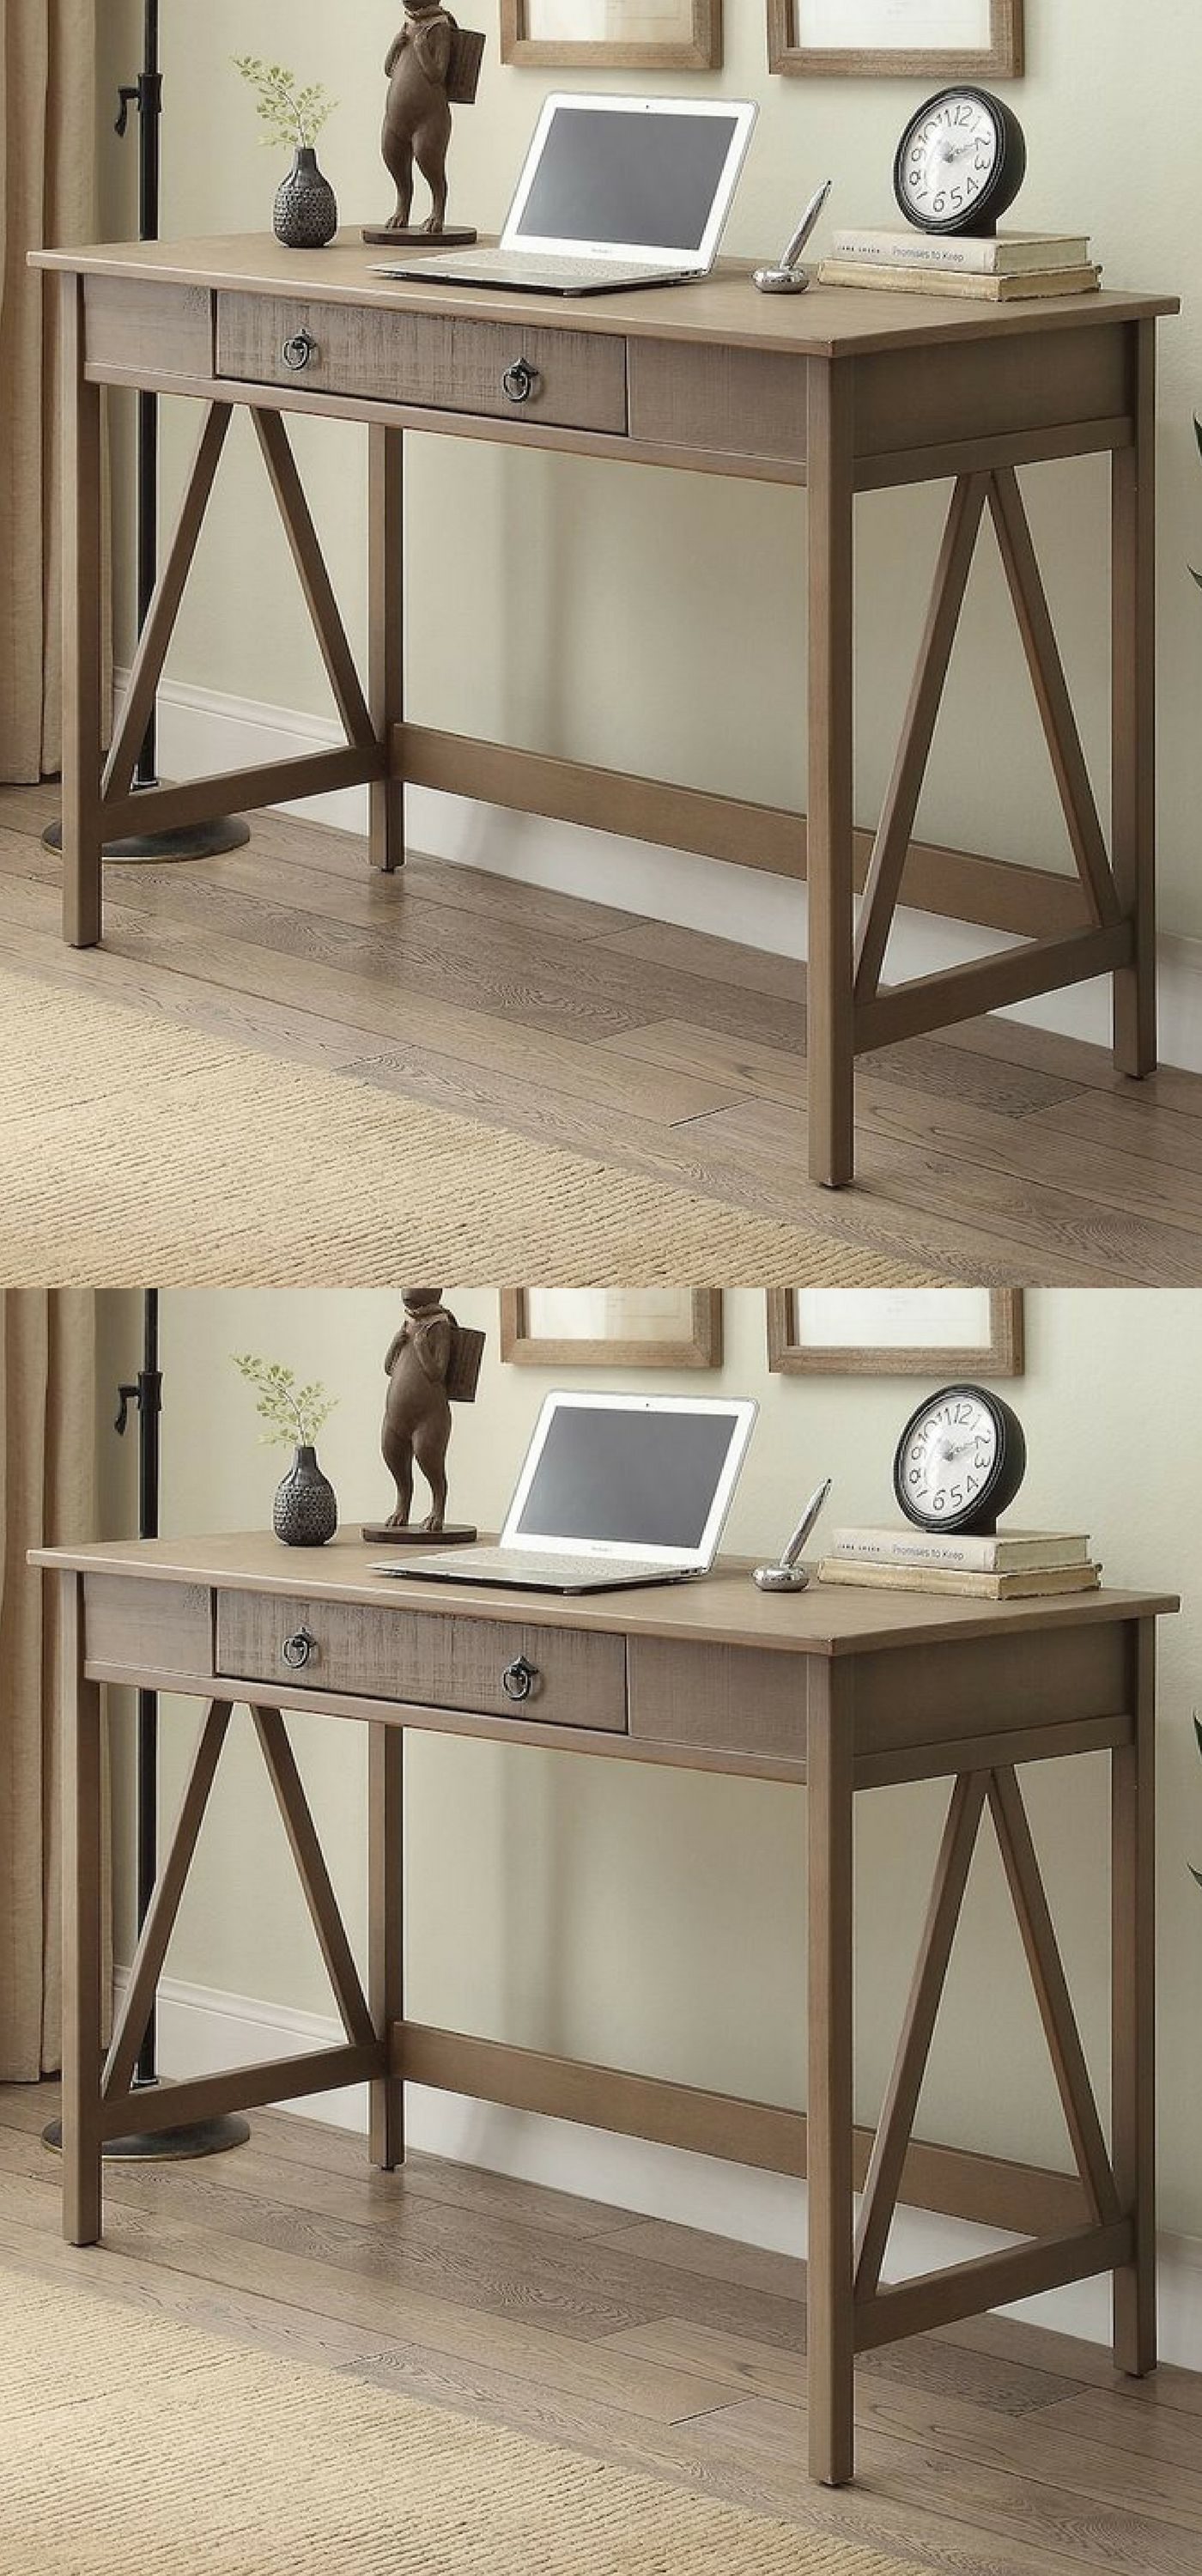 Rustic Finish Gives This Desk Bold Look Enhance